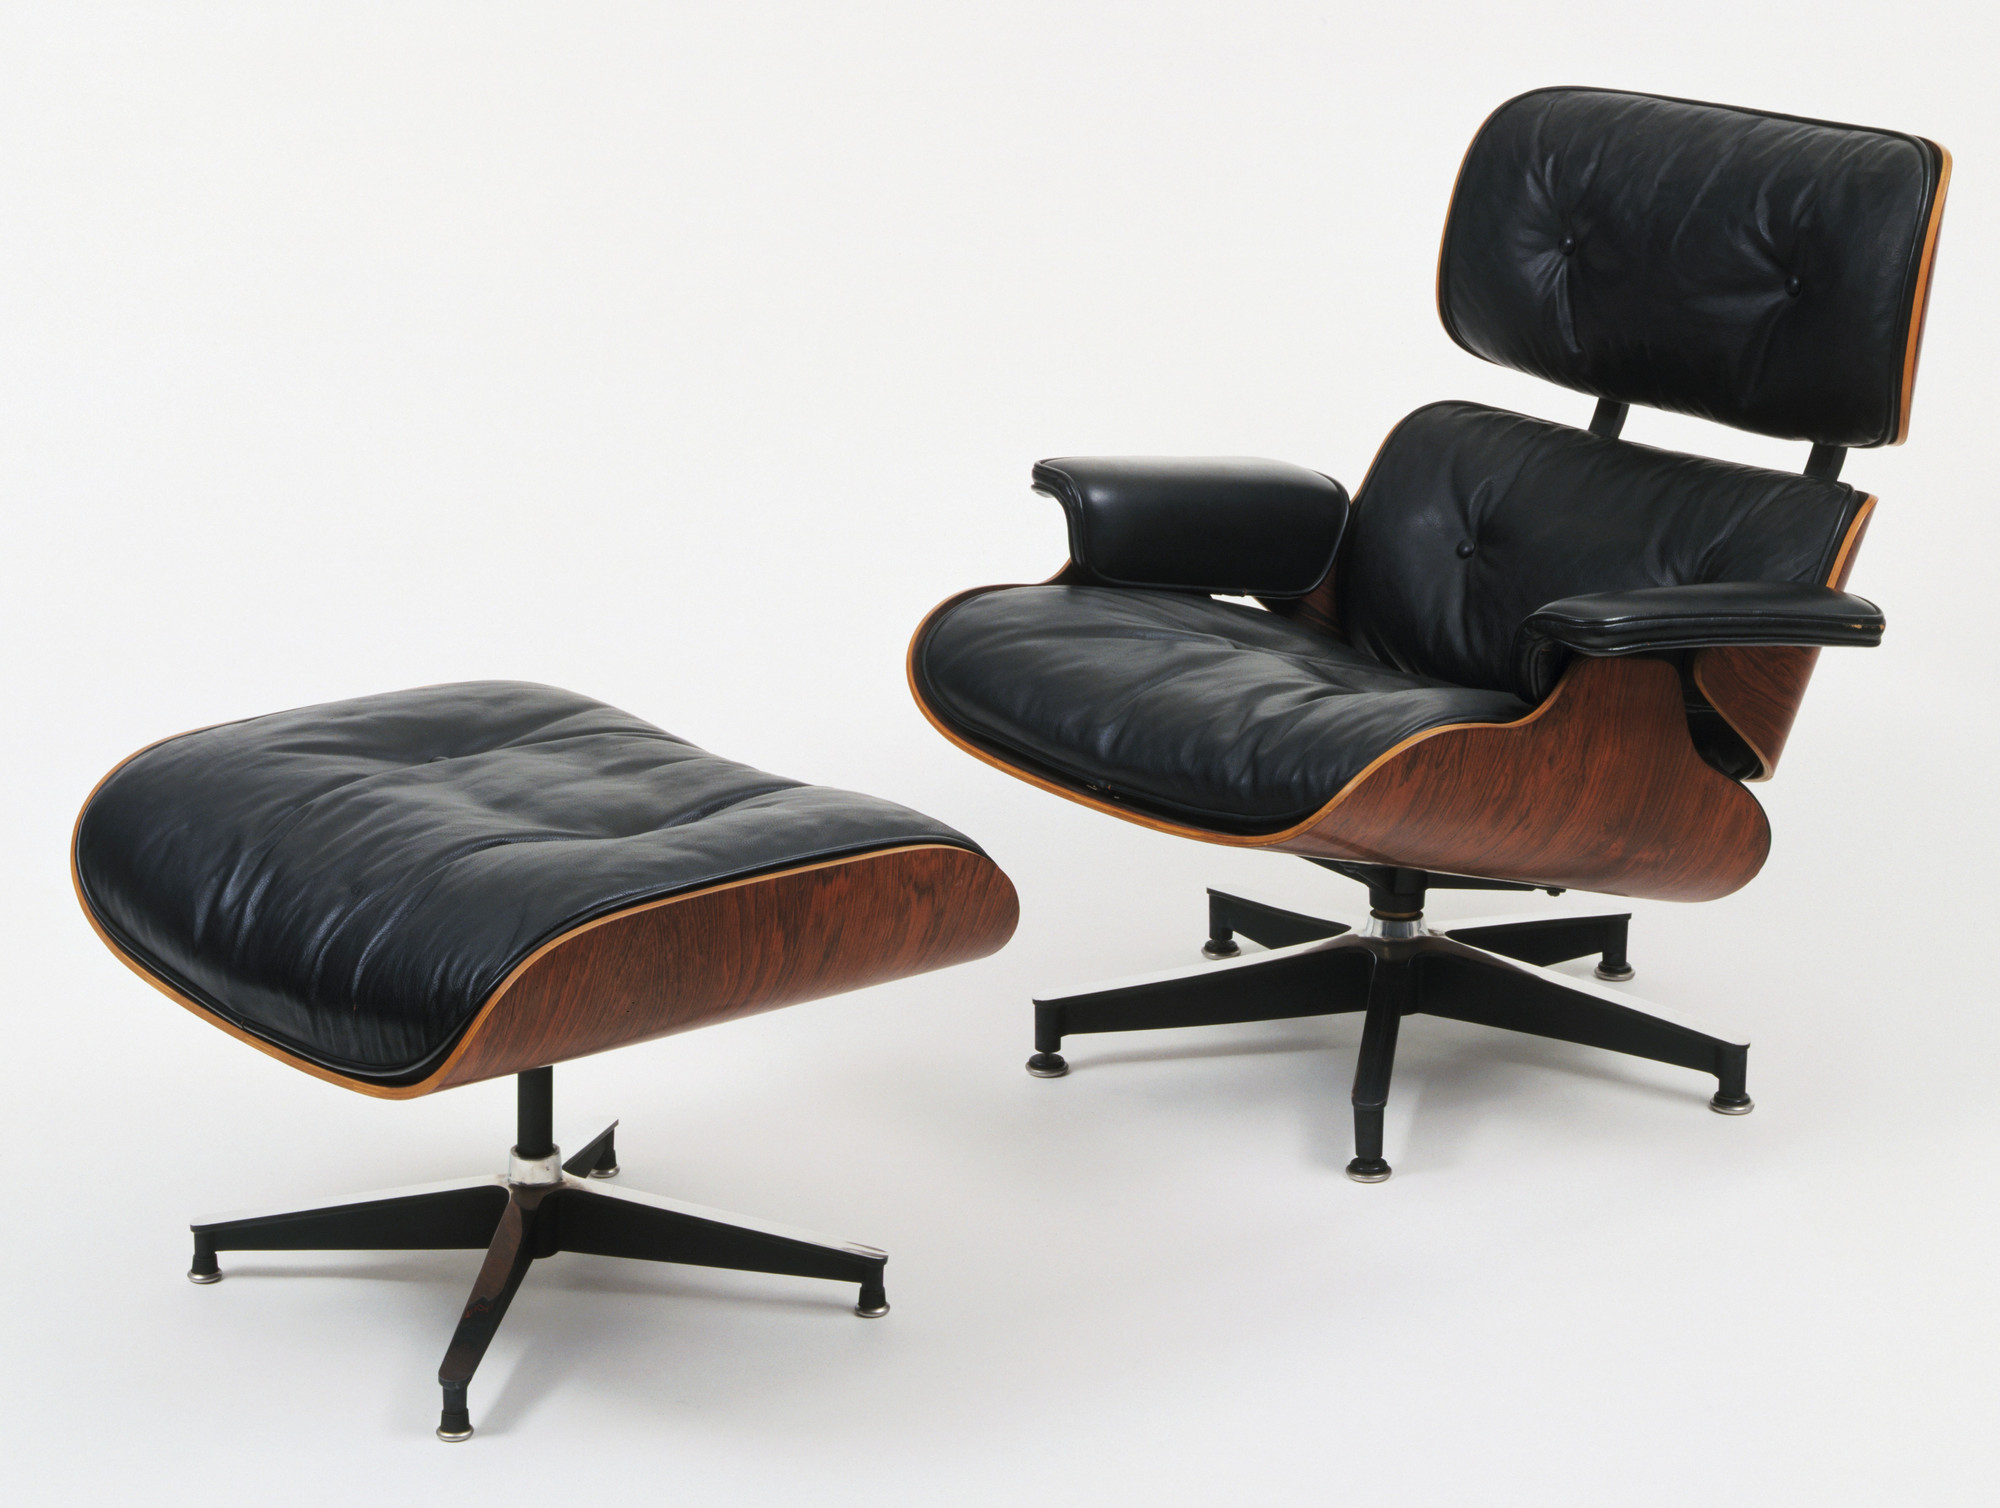 Poltrona Di Eames.Charles Eames Ray Eames Lounge Chair And Ottoman 1956 Moma